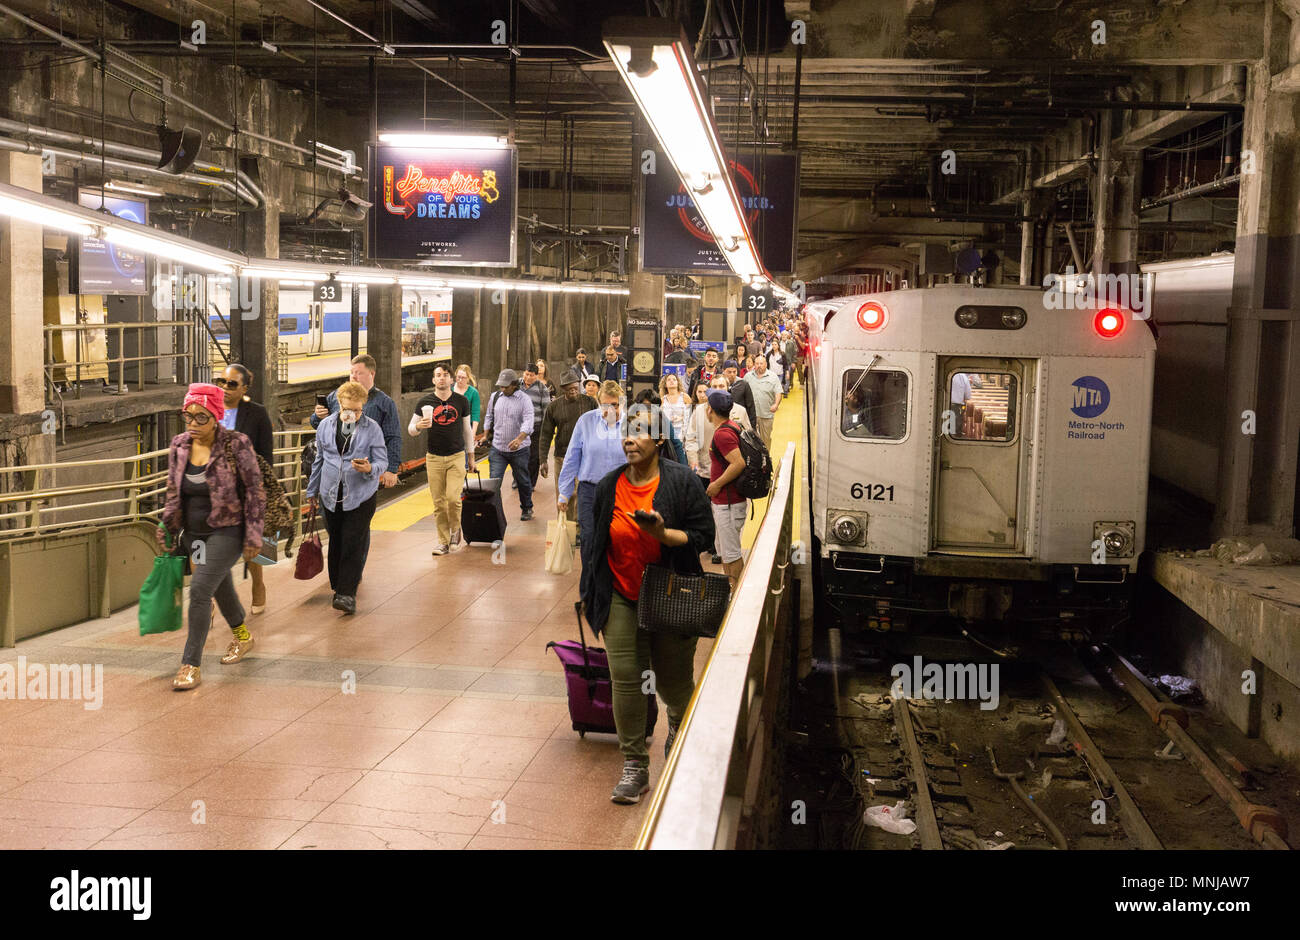 Grand central Subway station, Passengers arriving on a subway train, New York subway, Midtown New York city, USA - Stock Image